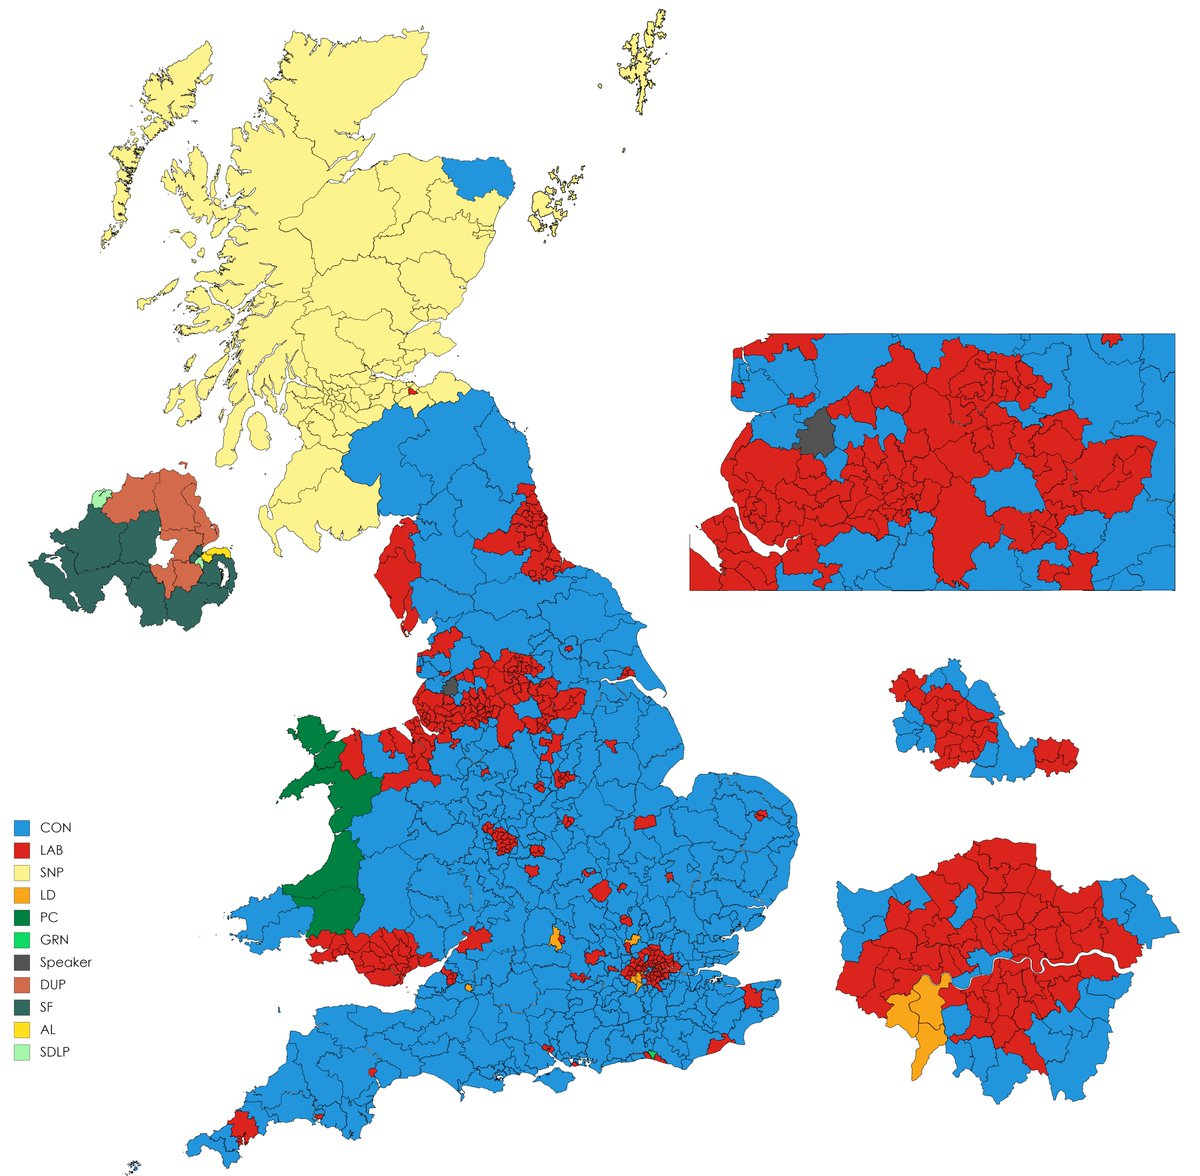 #GeneralElection2020 results based on recent @Survation polling. Yes. A #Labour government. #KeirStarmer #BorisJohnson #CoronavirusOutbreak #DominicCummnings #indyref #SNP #Wales #ToryMPs #Brexit #Maps #polls #politics #Scotland #londonprotest #protest2020 #chlorinatedchicken https://t.co/8Mw1EQZcwB